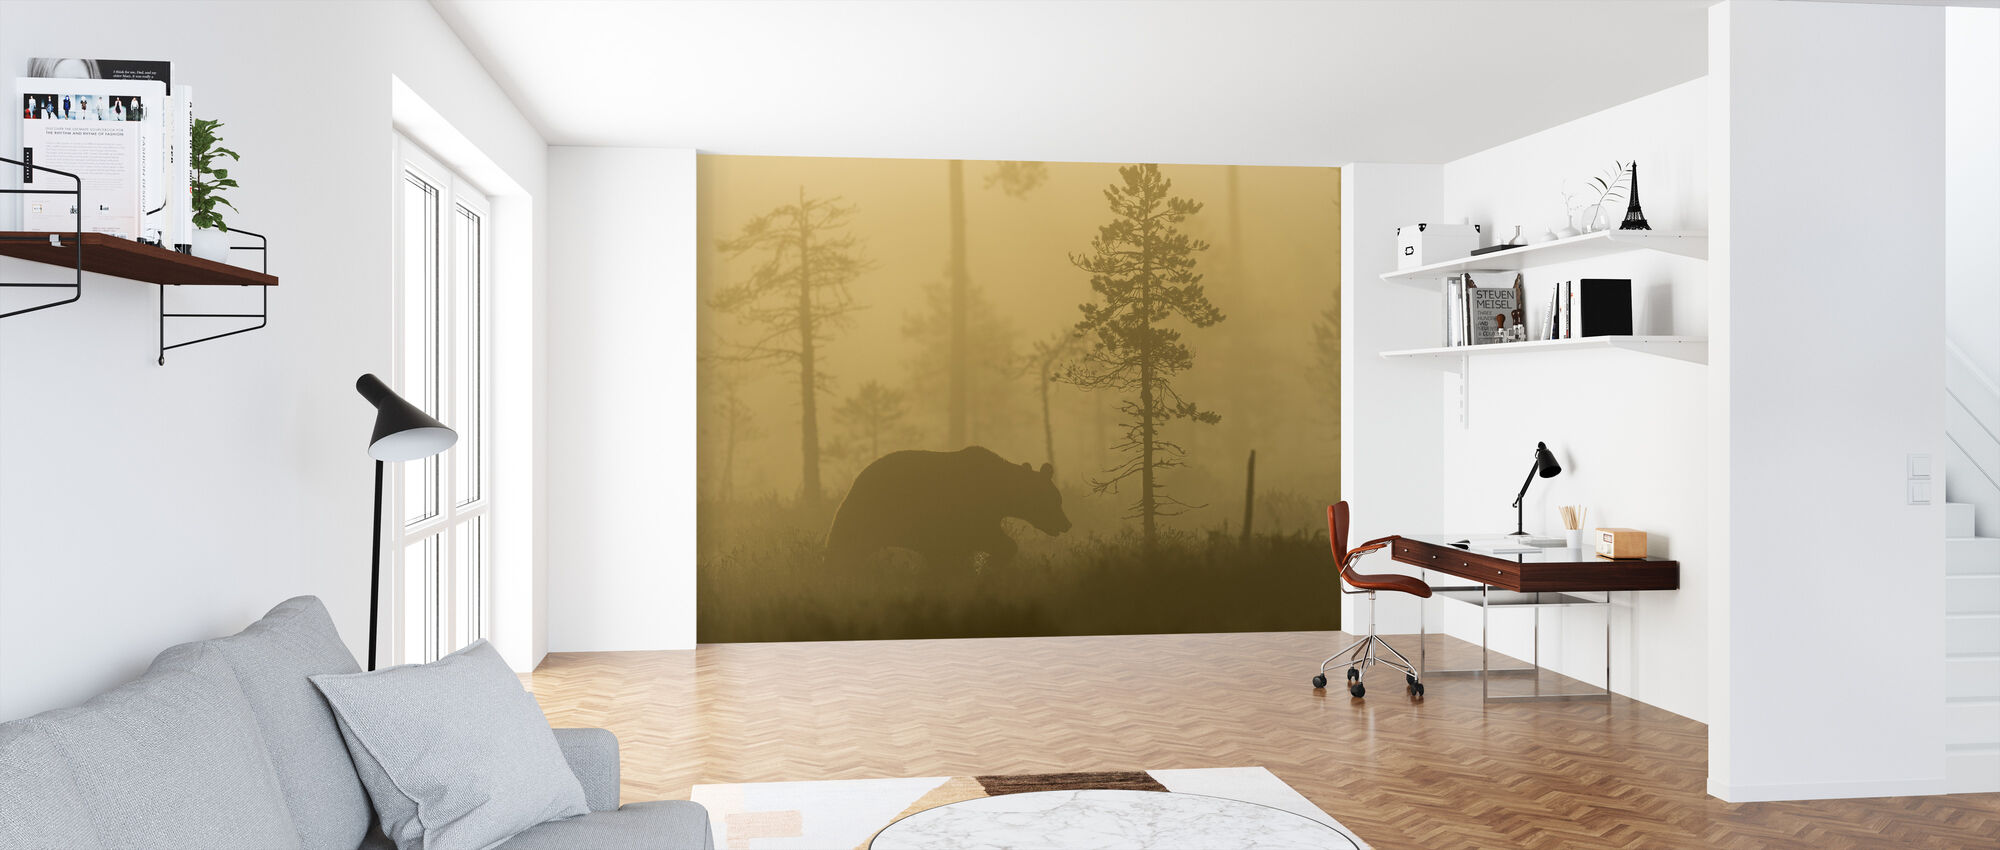 Bear in Morning Fog - Wallpaper - Office